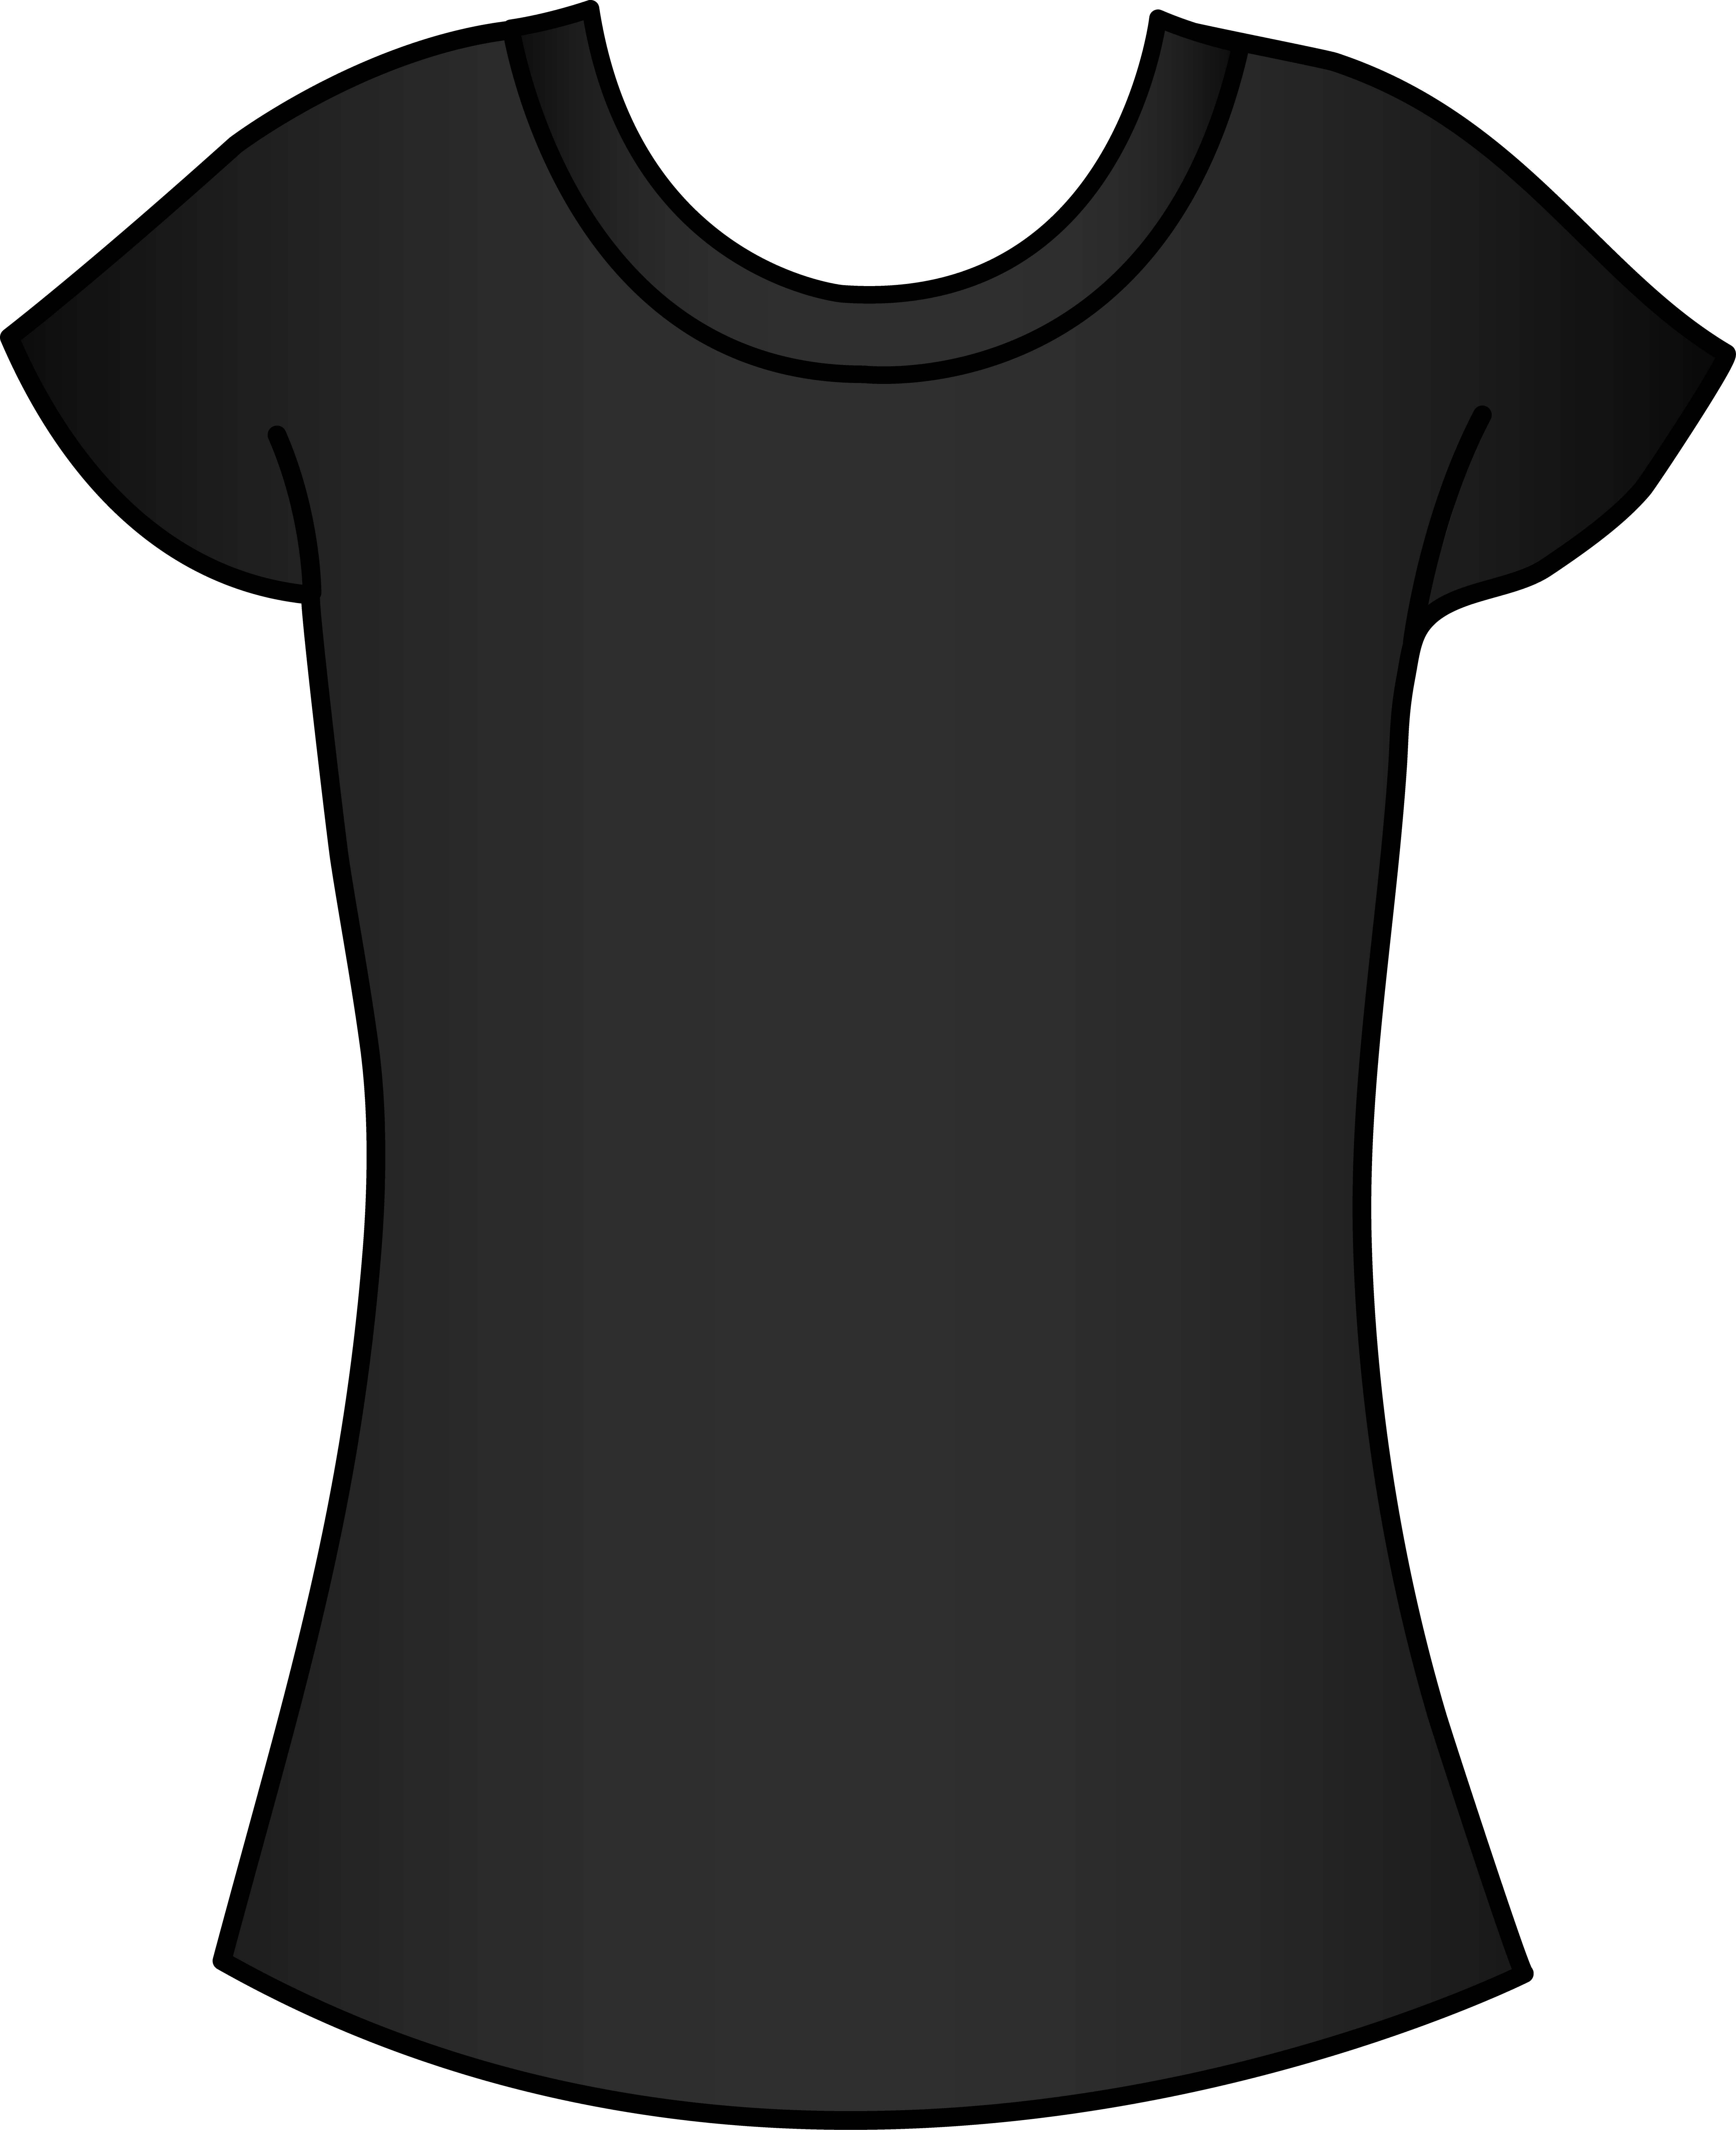 T Shirt Clipart Png : shirt, clipart, Library, Womens, Shirt, Banner, Freeuse, Download, Files, ▻▻▻, Clipart